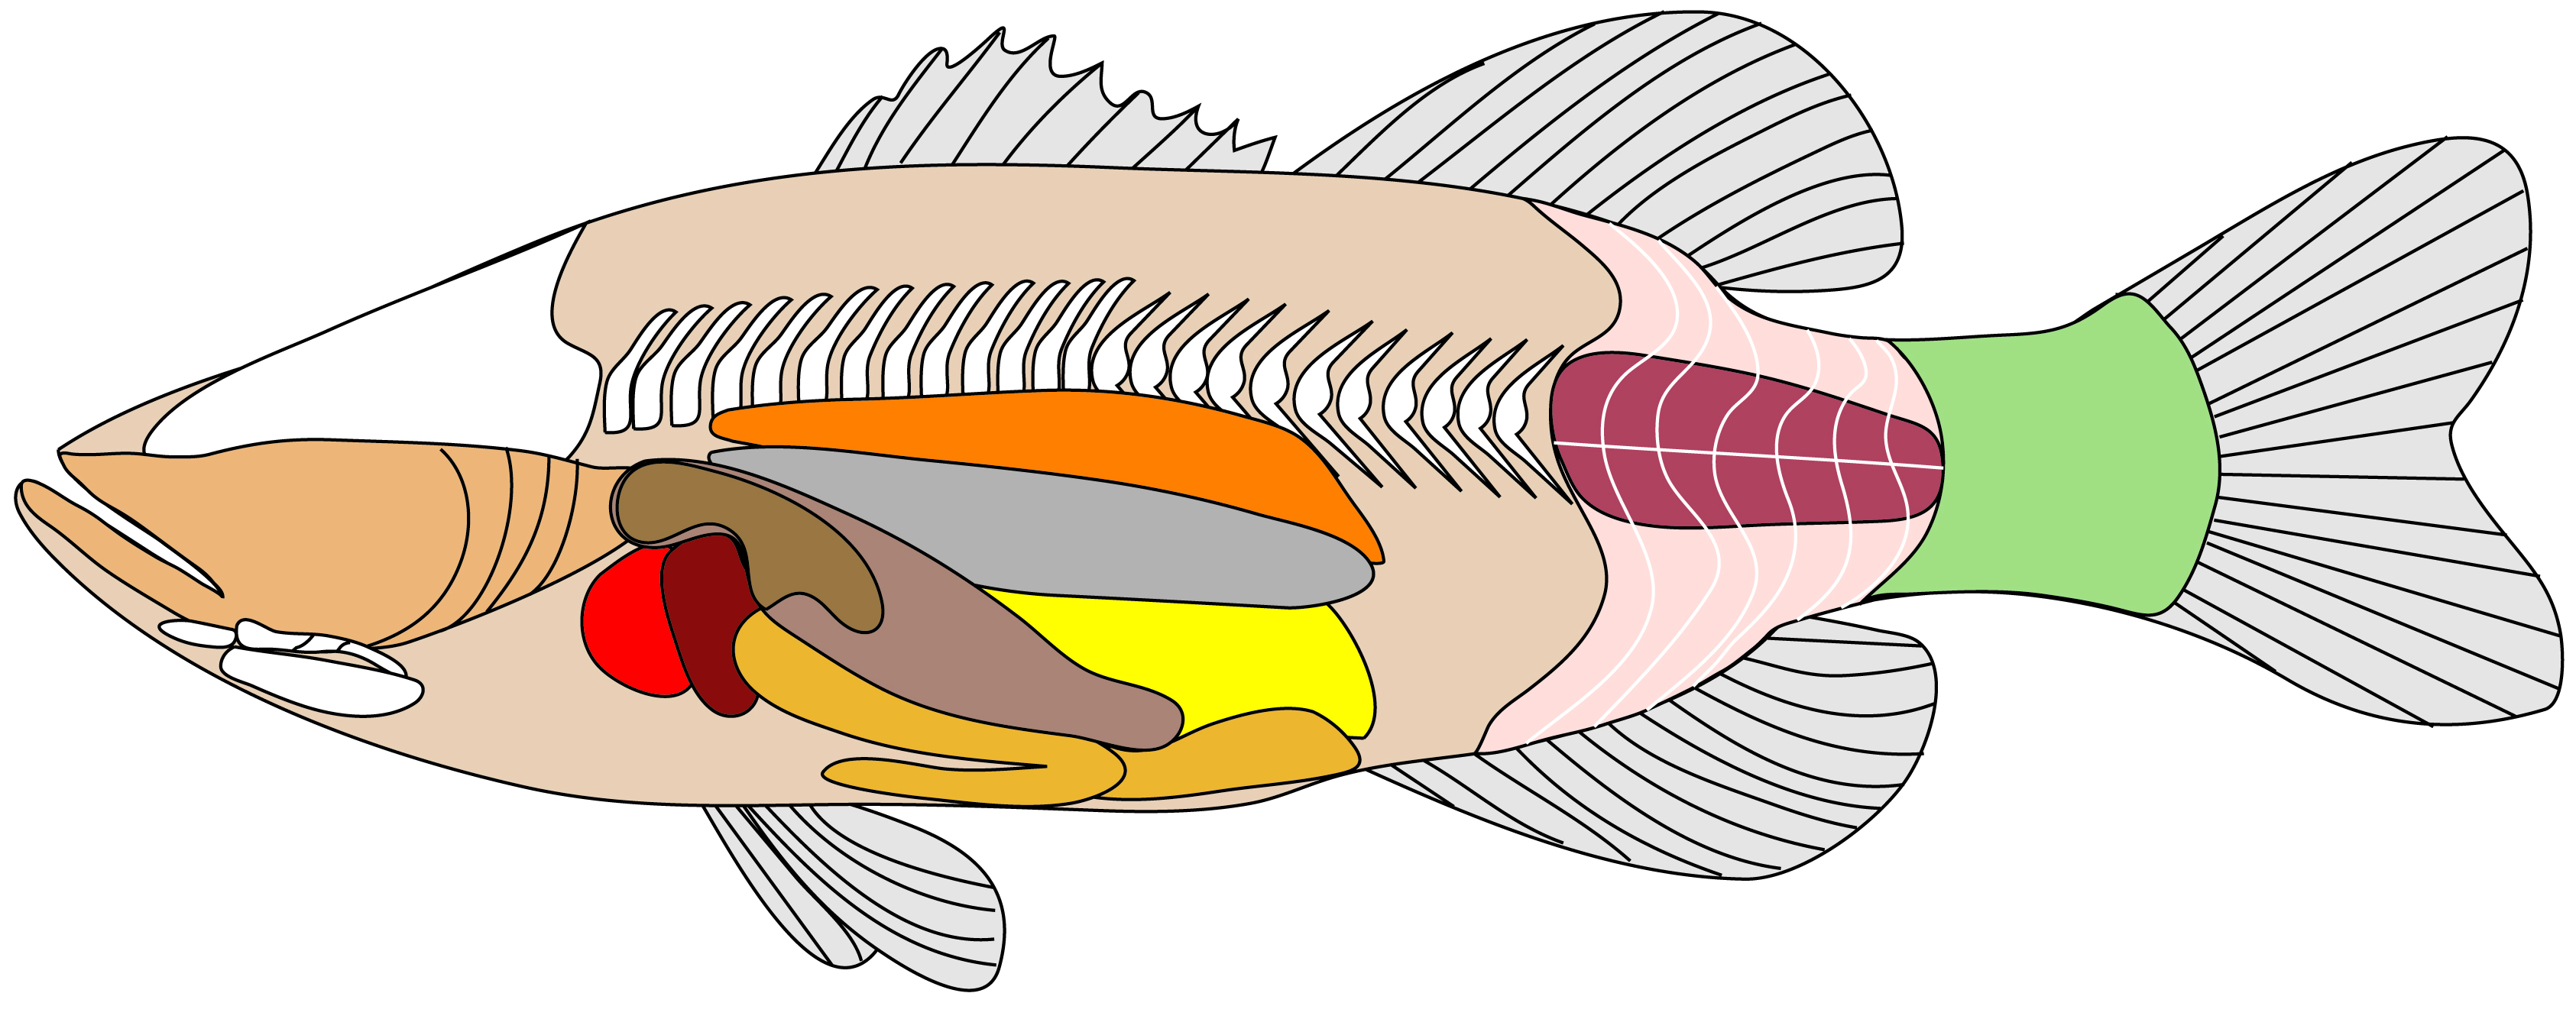 Investigating A Deep Sea Mystery internal fish anatomy